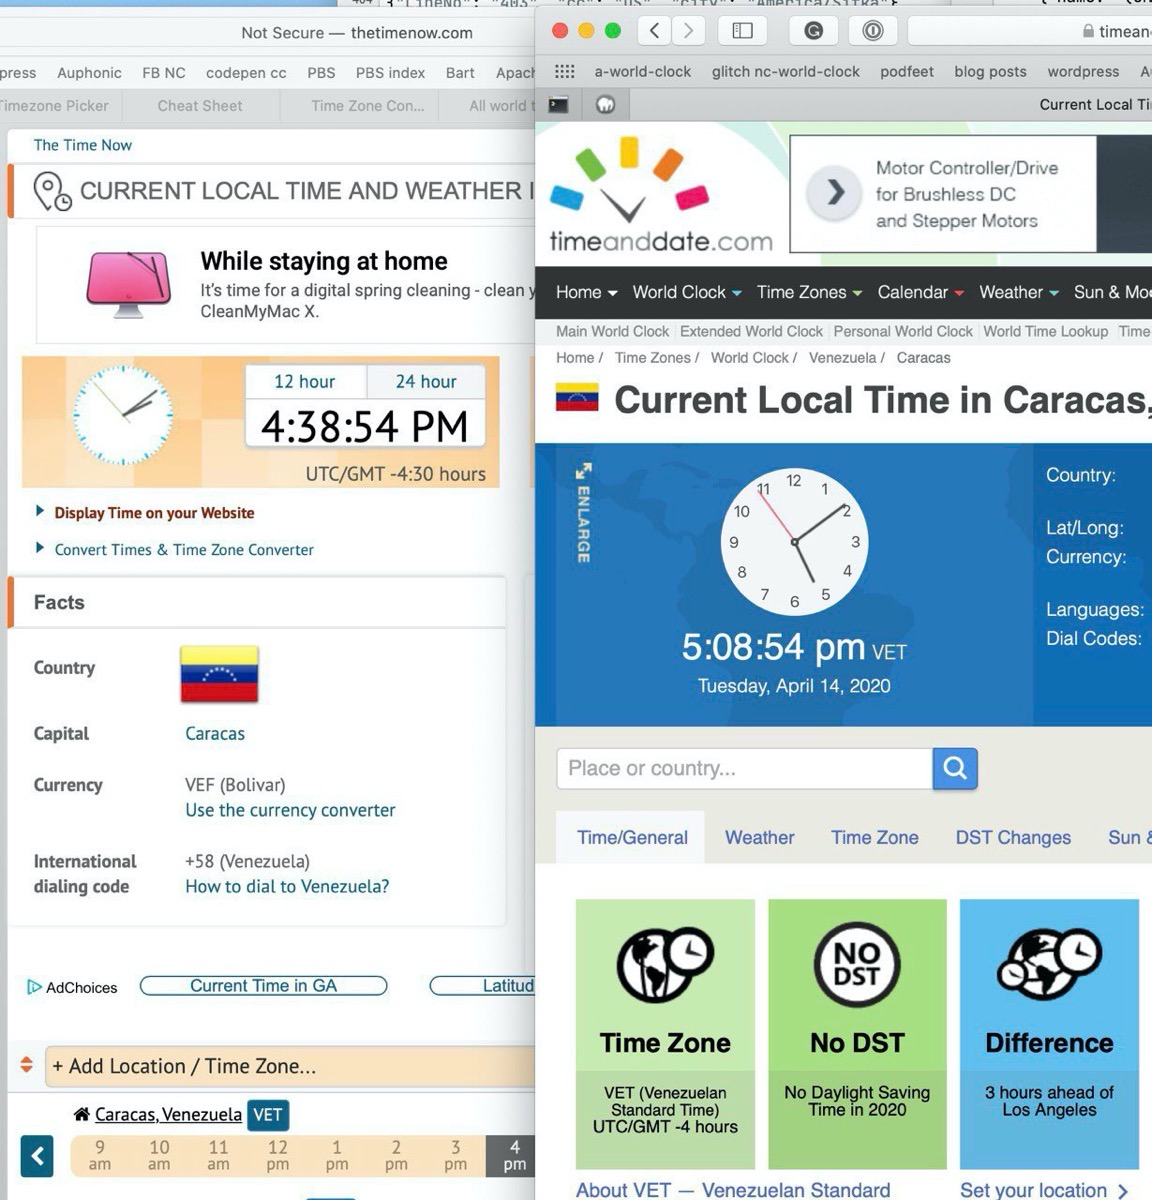 Caracas in different timezones on two different websites